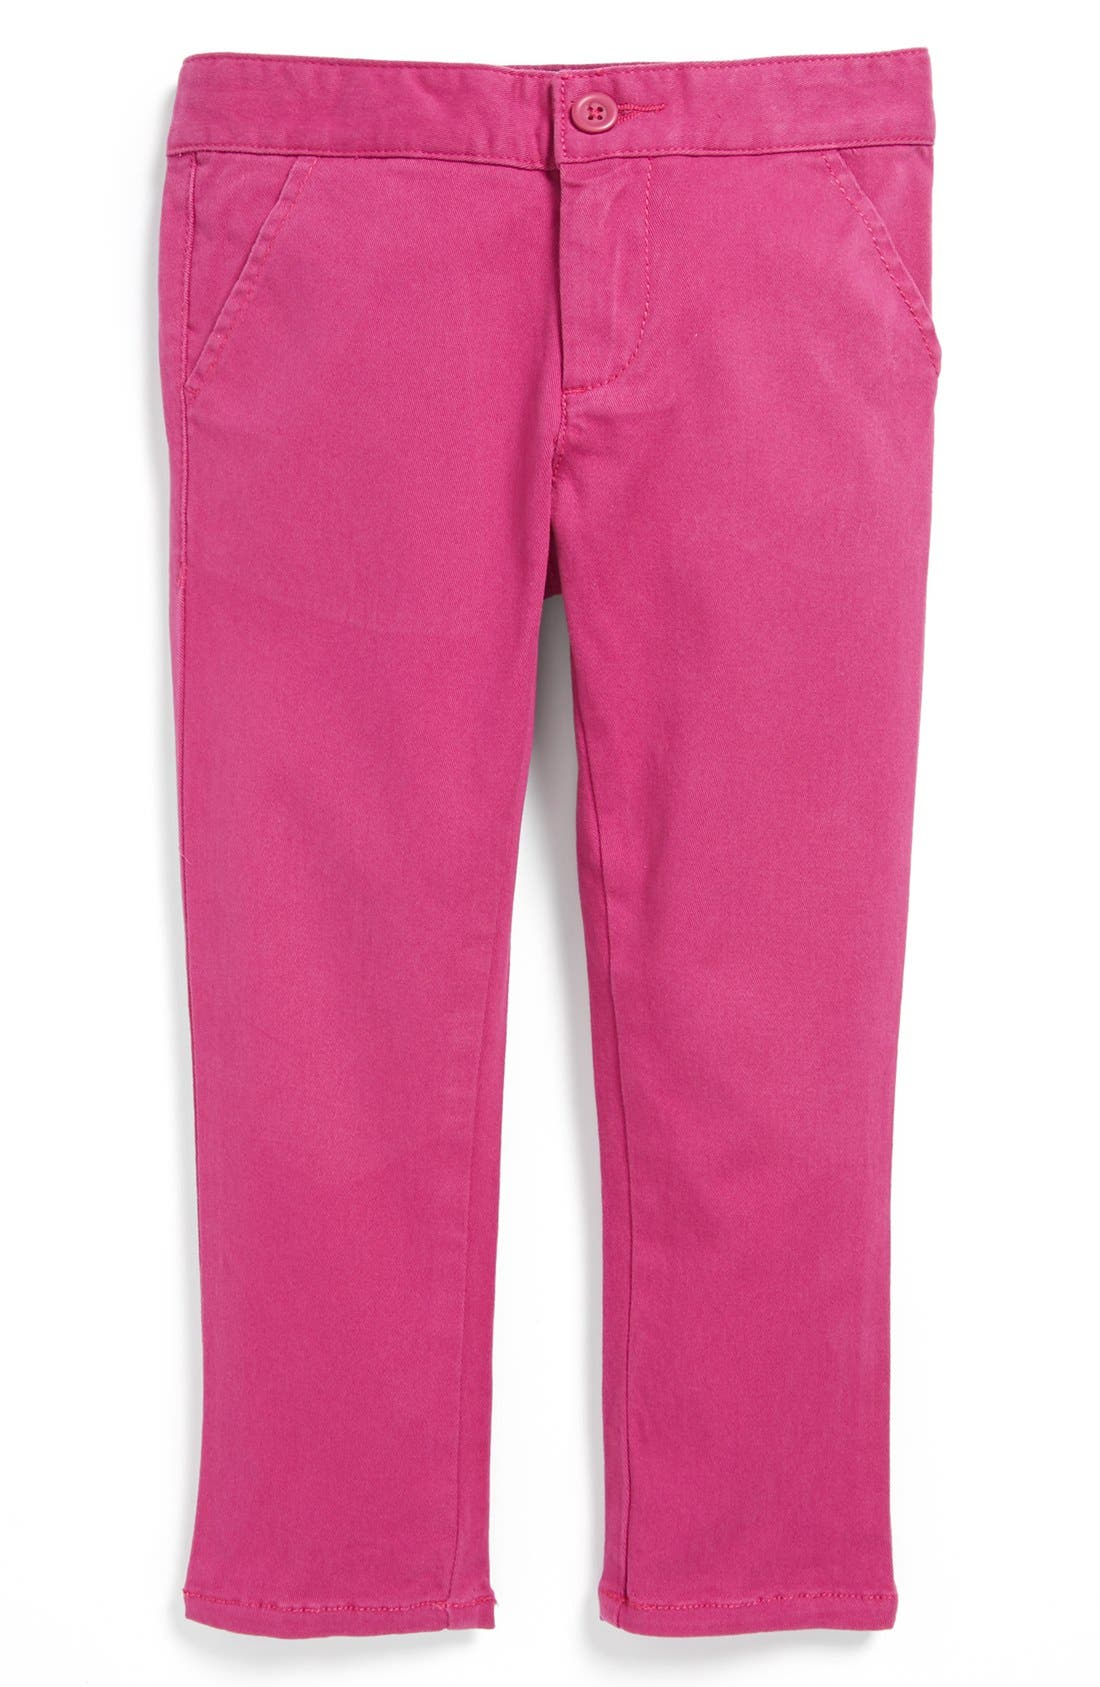 Alternate Image 1 Selected - Tea Collection Stretch Twill Pants (Toddler Girls)